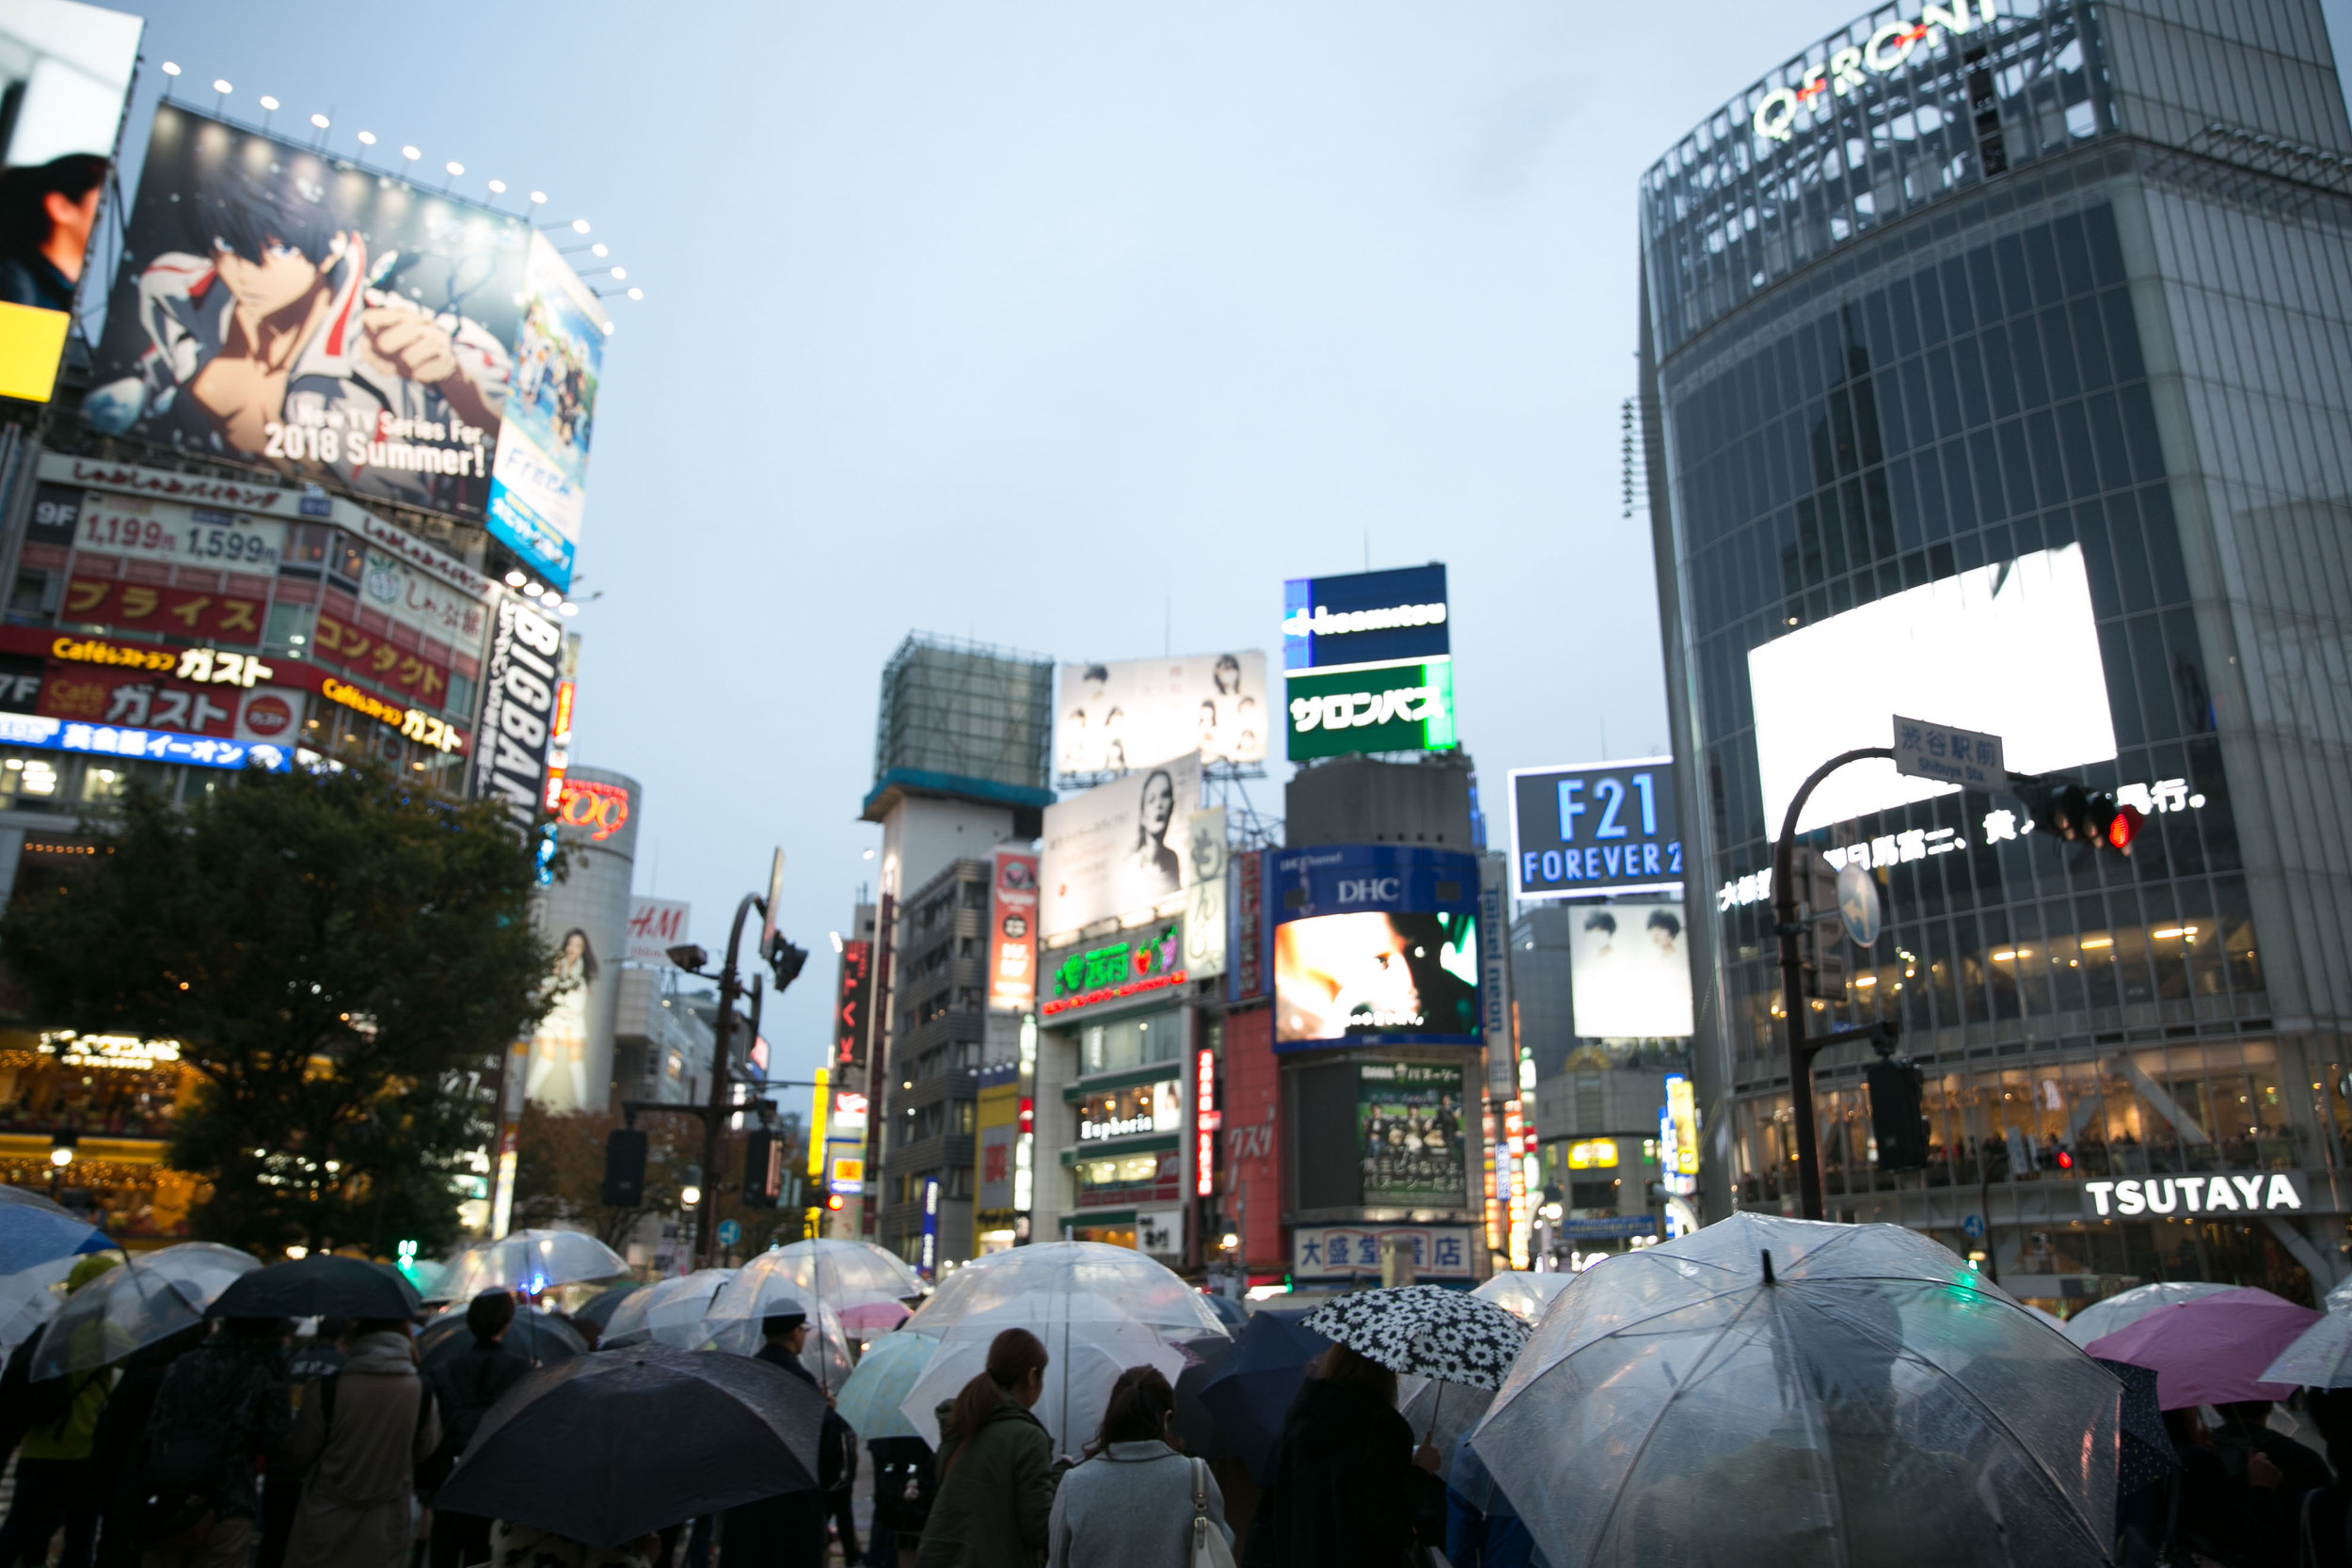 One of the best things to do in Tokyo is visit Shibuya Crossing